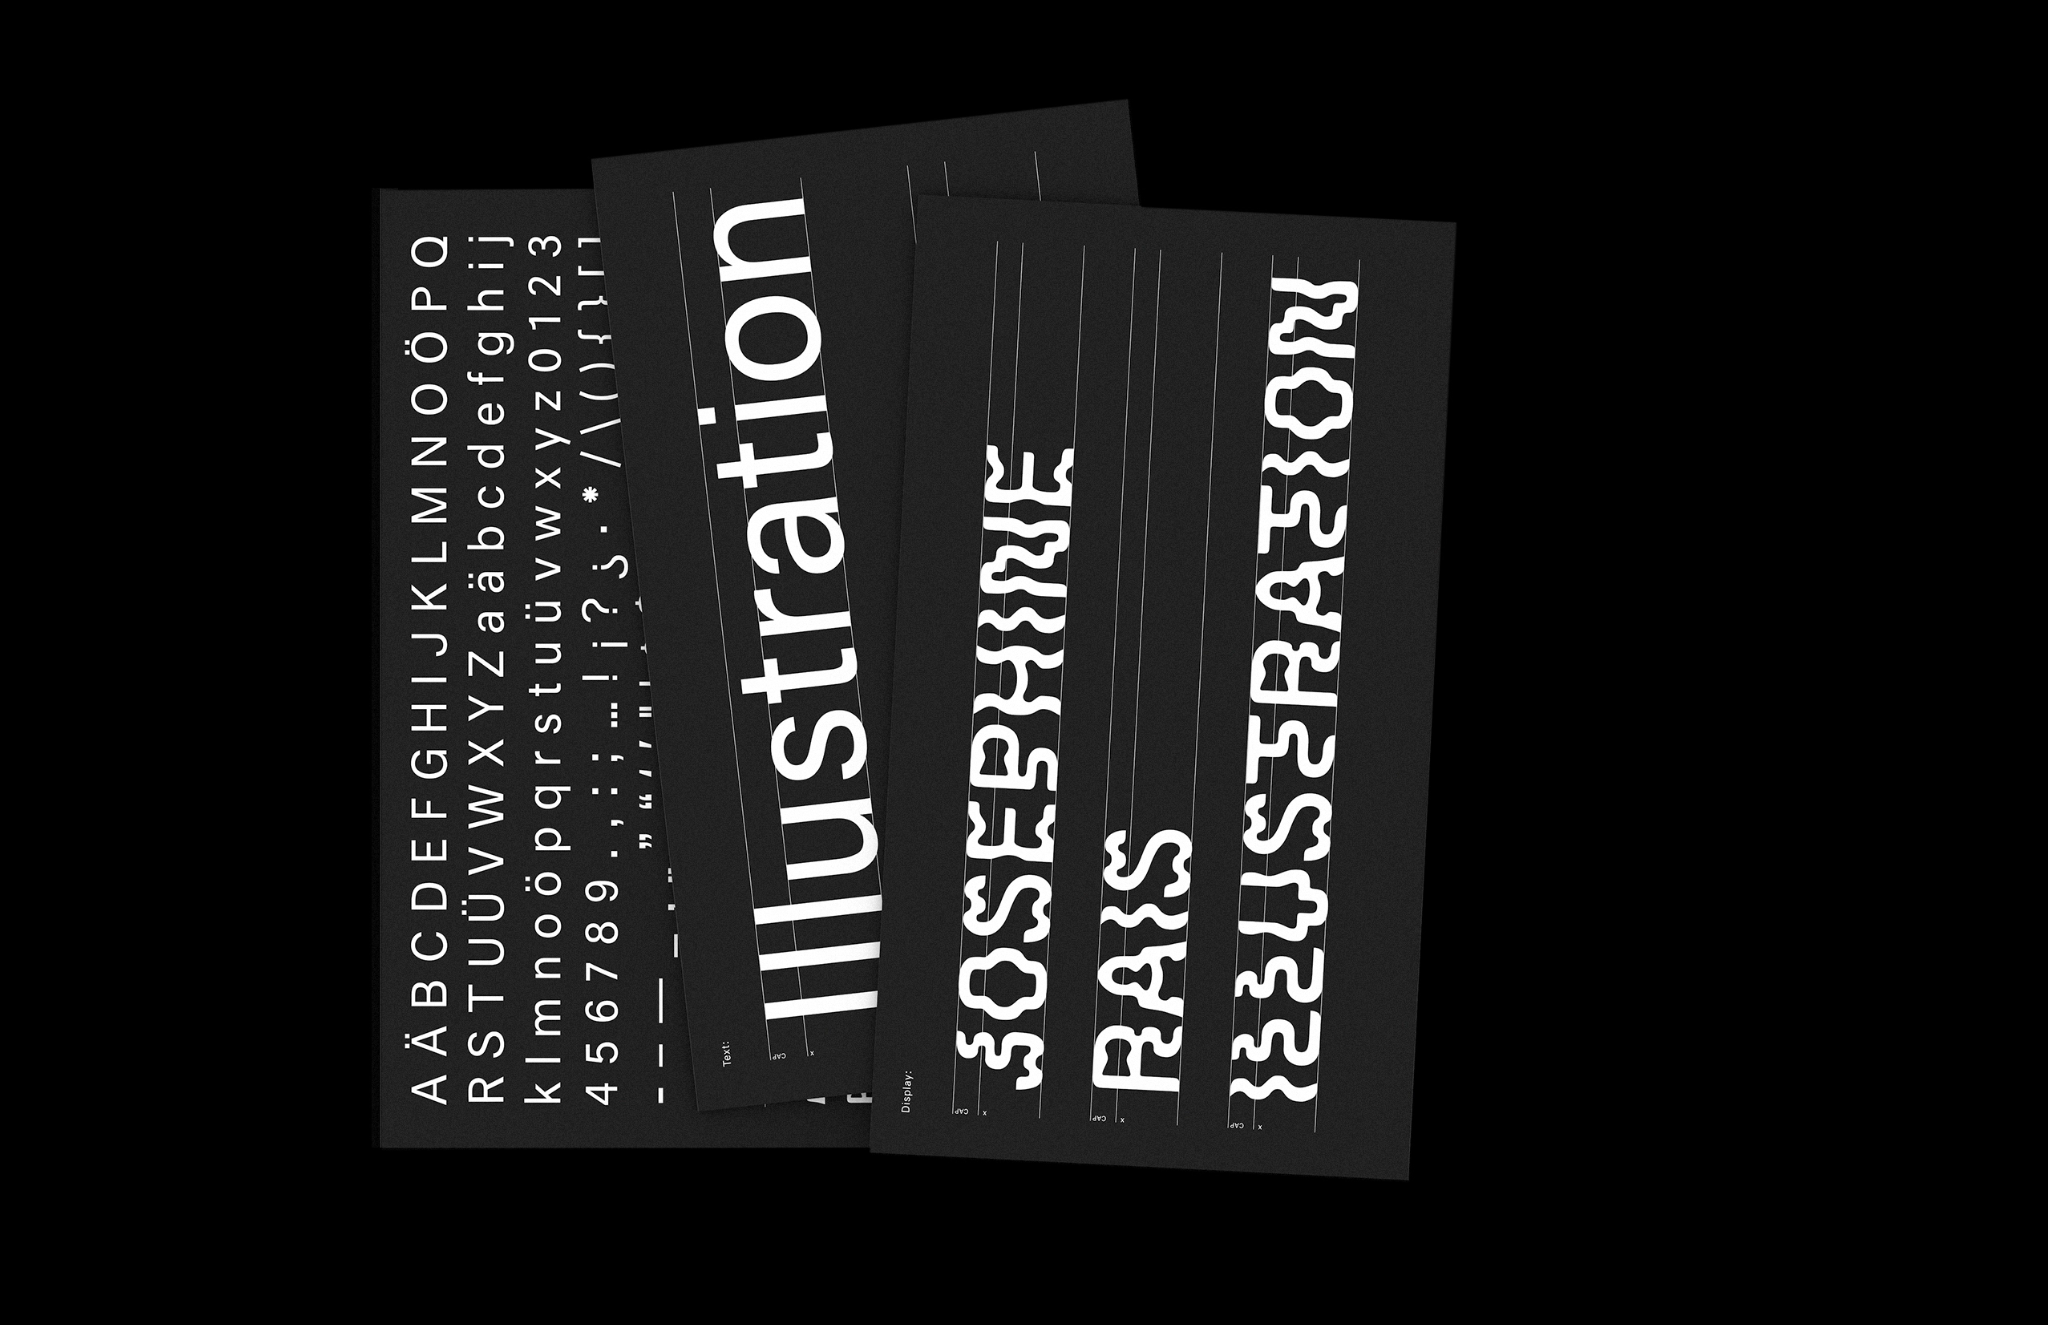 Daniel-Stuhlpfarrer_Visual-Communication_Graphic-Design_Typeface_Zuckerl-Variable-Font_Typeshowing-2